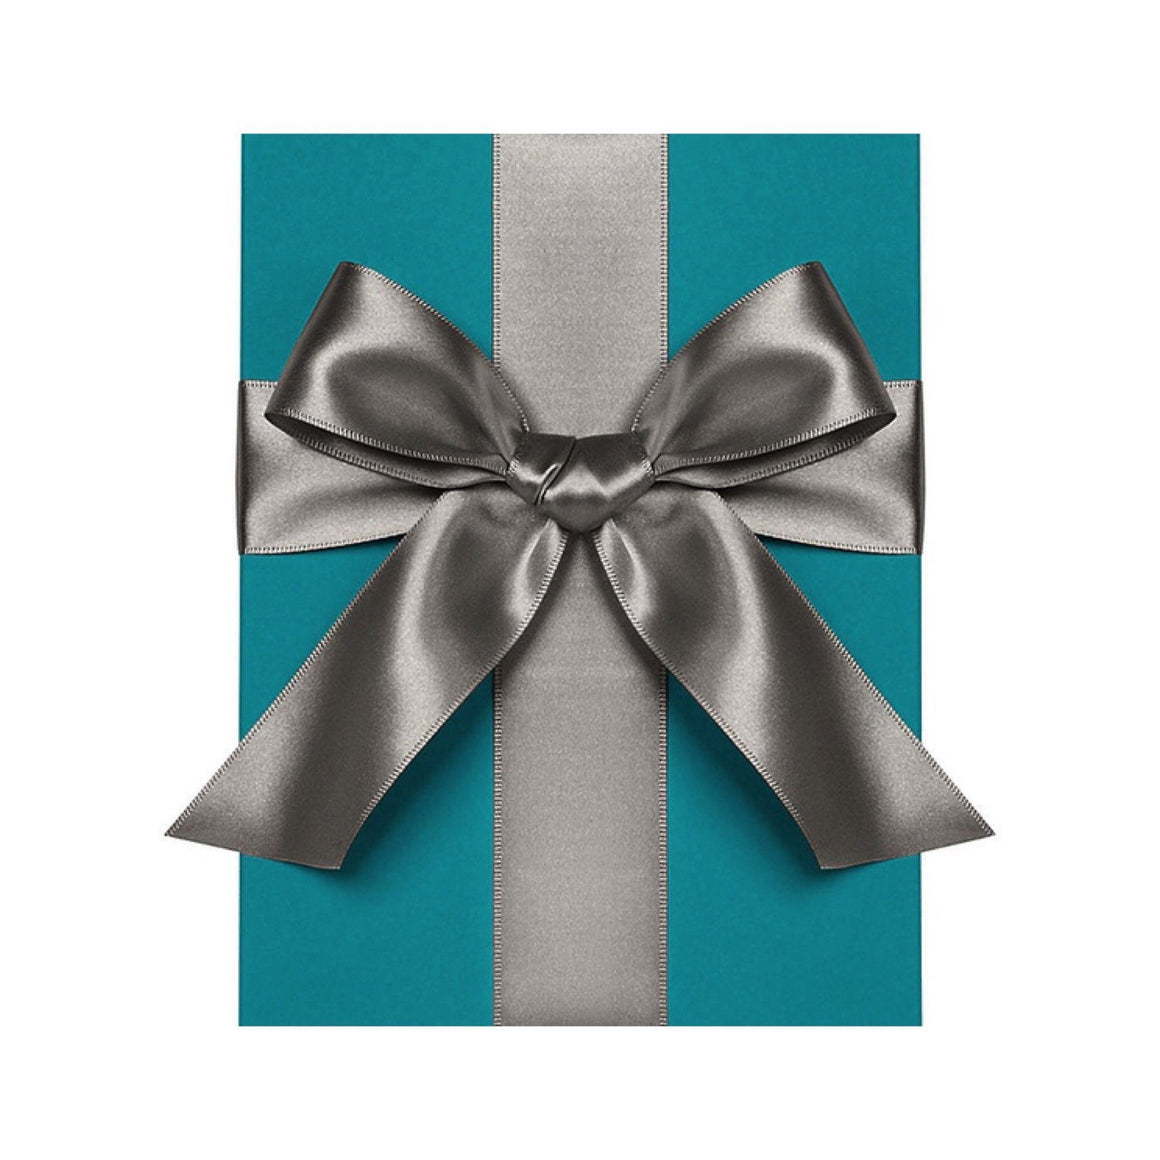 "GIFT GIVING - RIBBON 1/4"" SLATE"